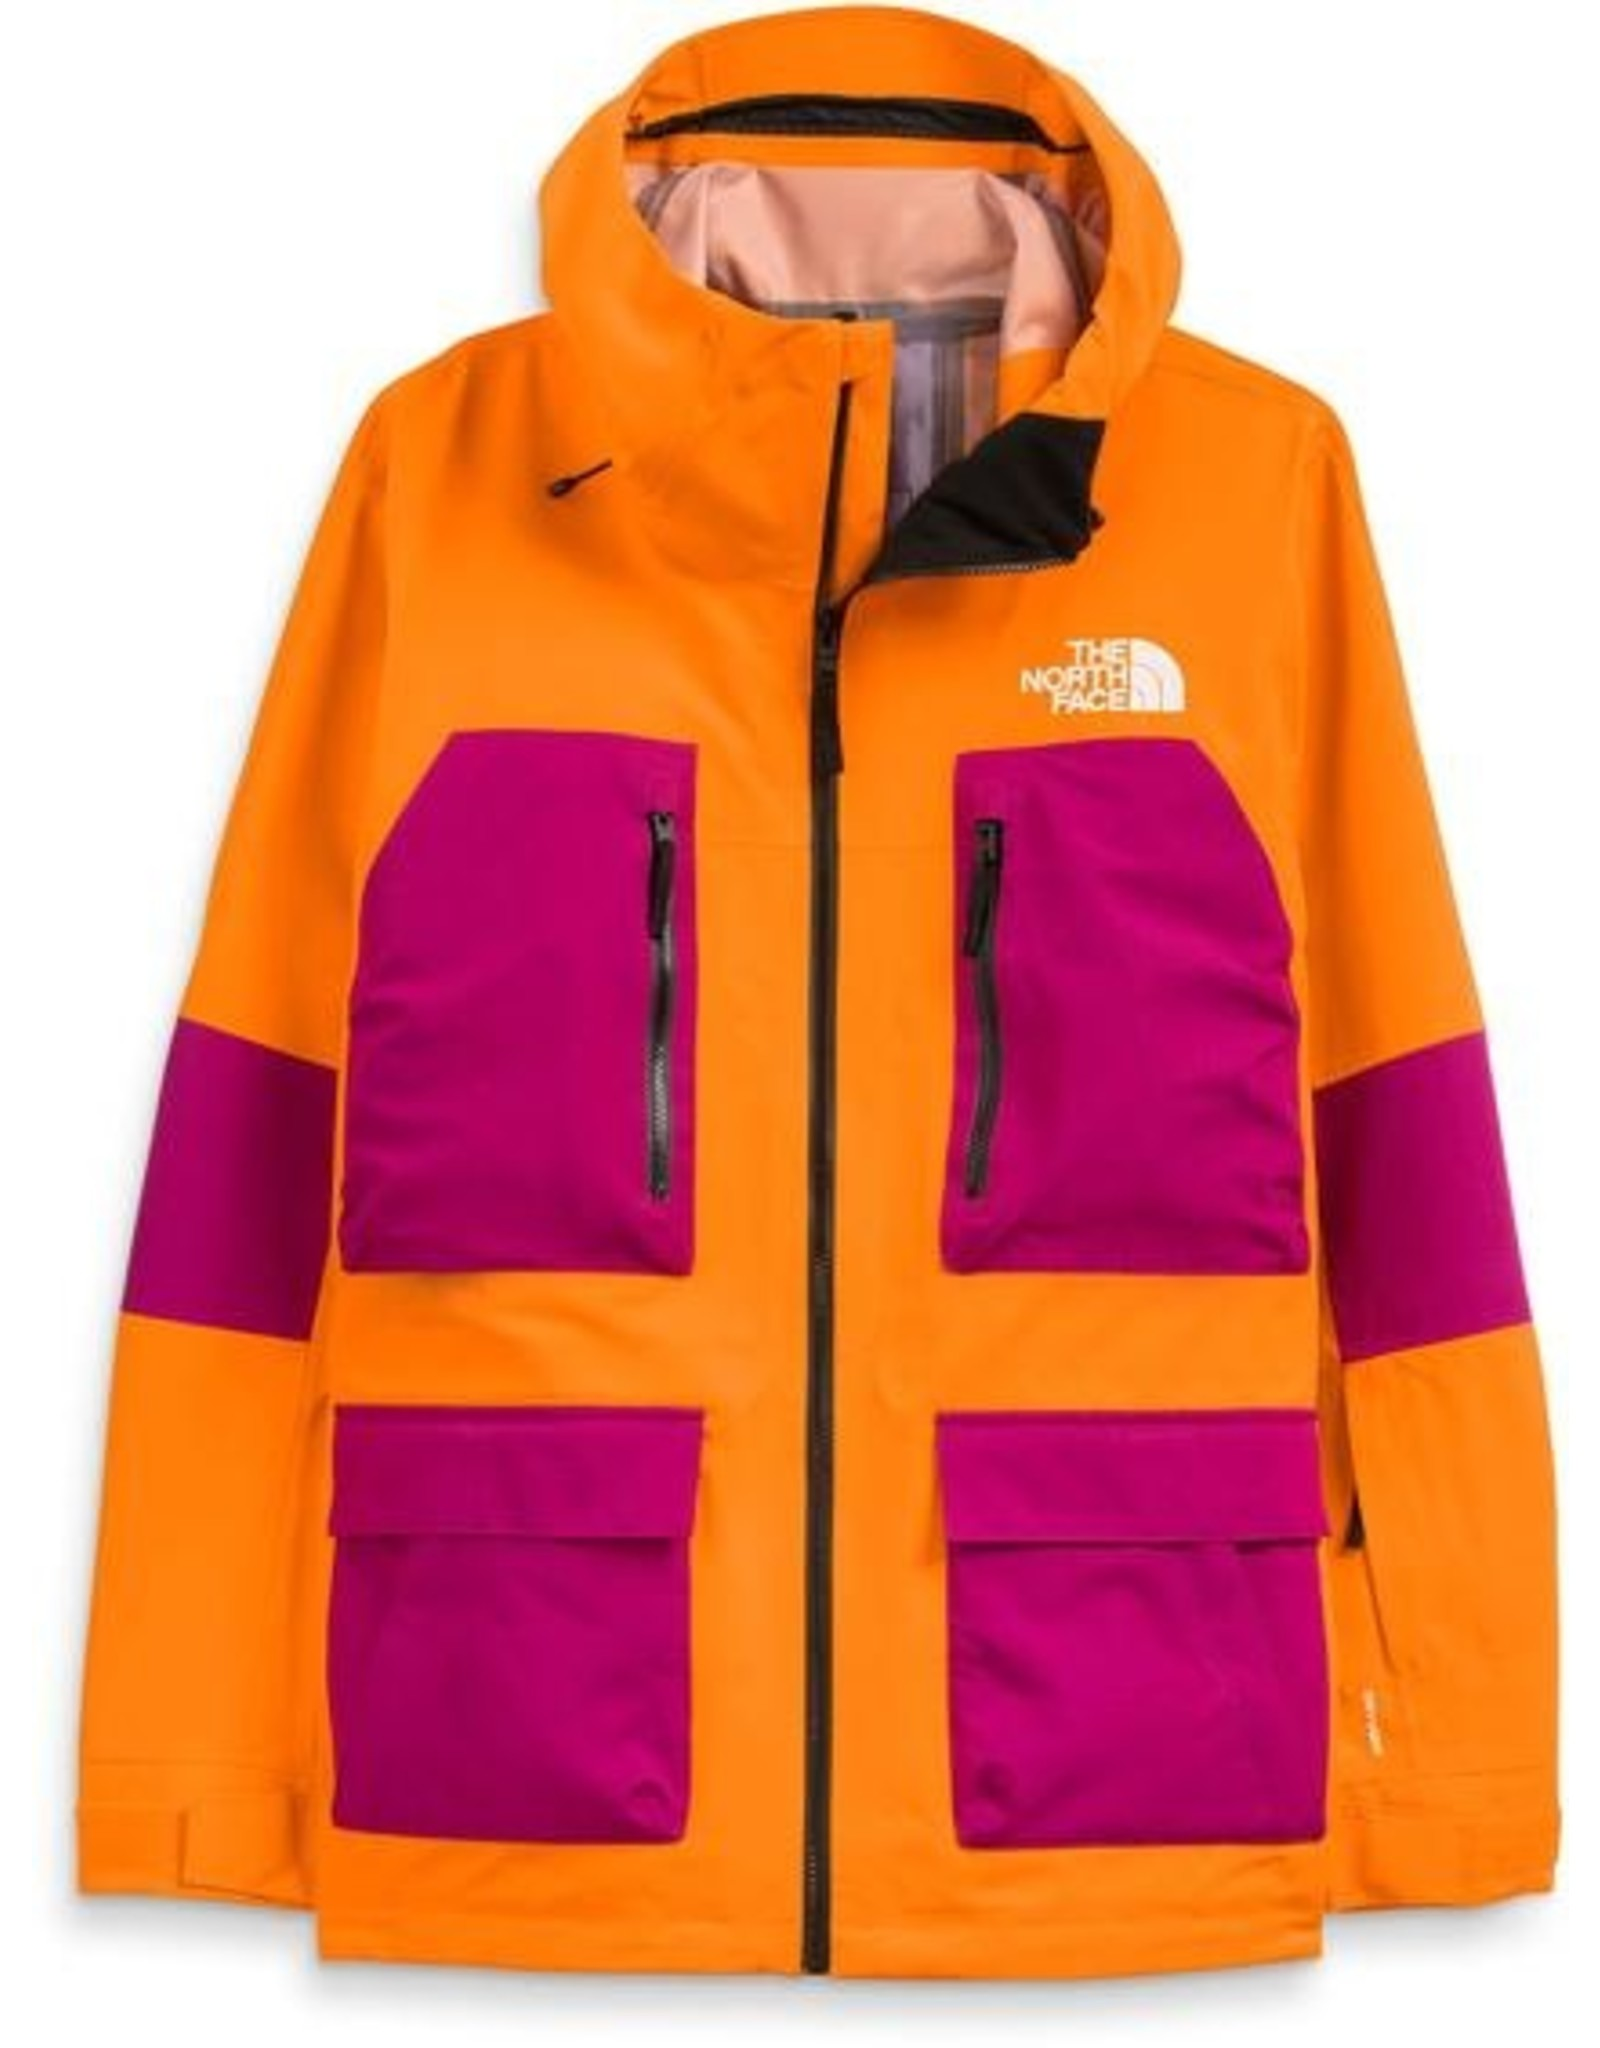 The North Face Dragline Jacket